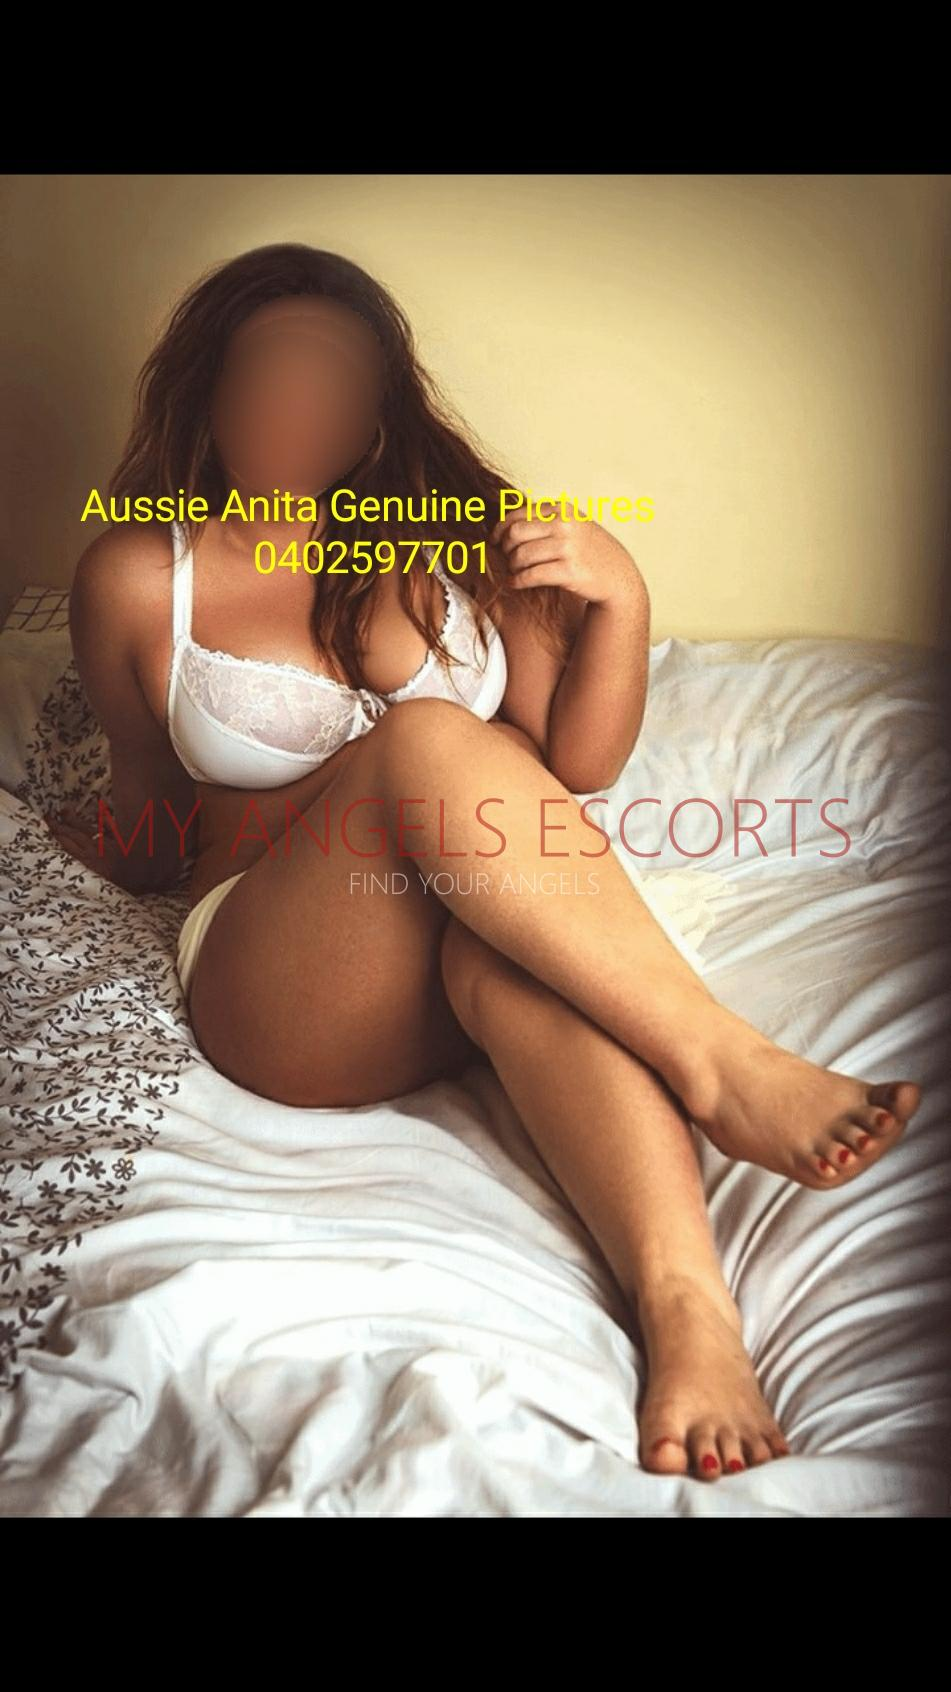 Australia Escorts-Aussie Anita -sensual-massage-Private-Brisbane-escorts-camira-Escorts-3